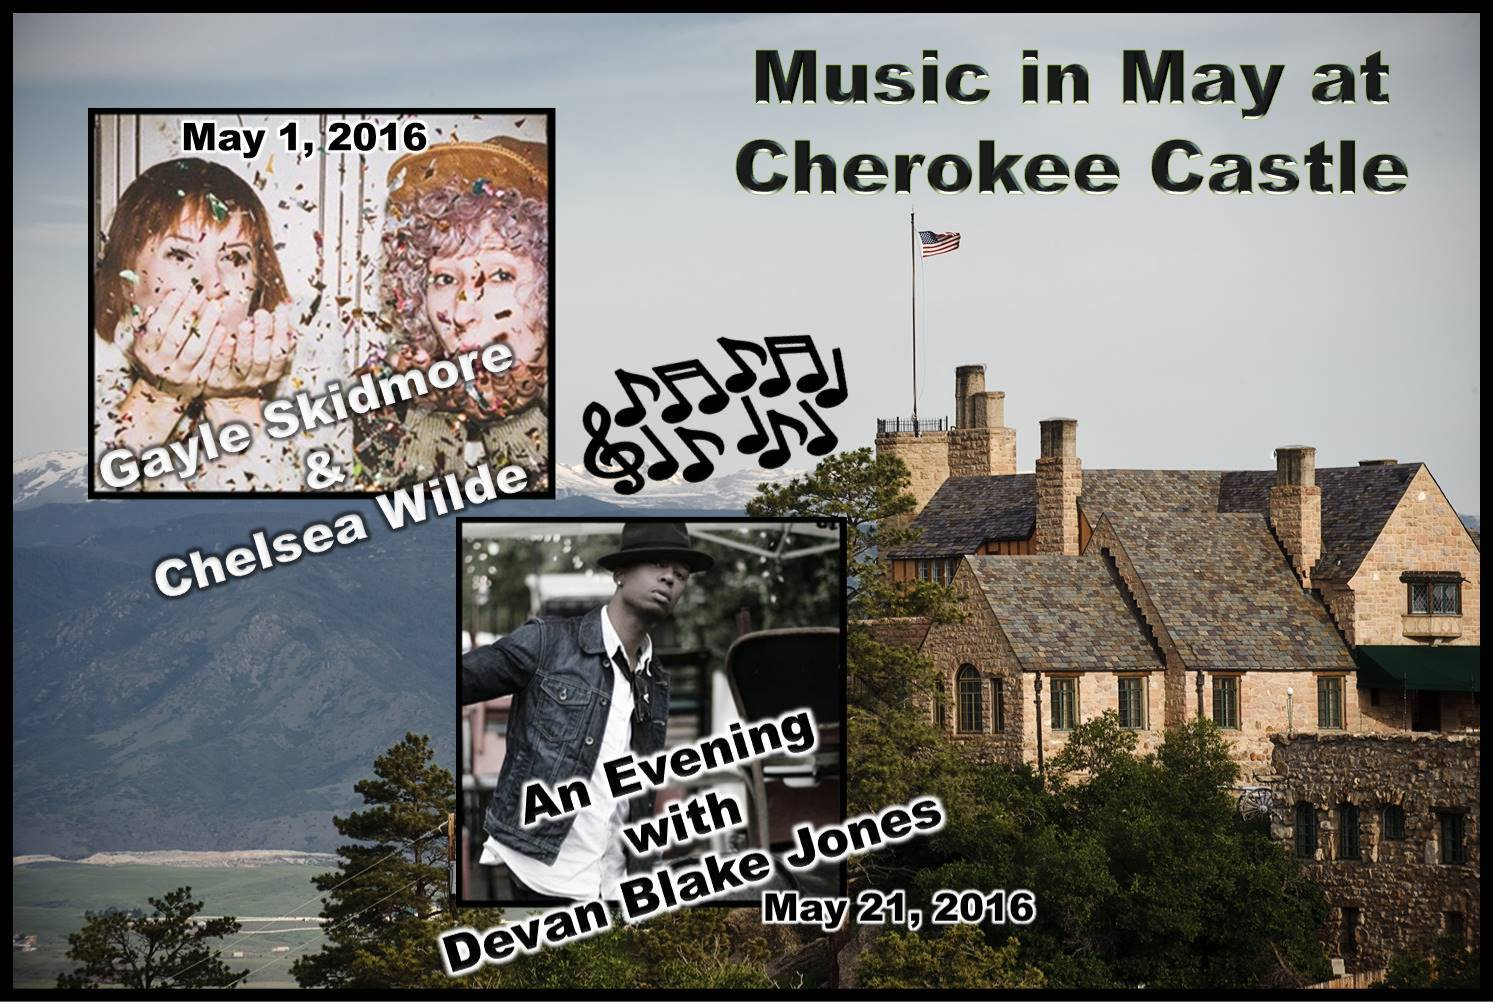 Music at Cherokee Castle in May, 2016